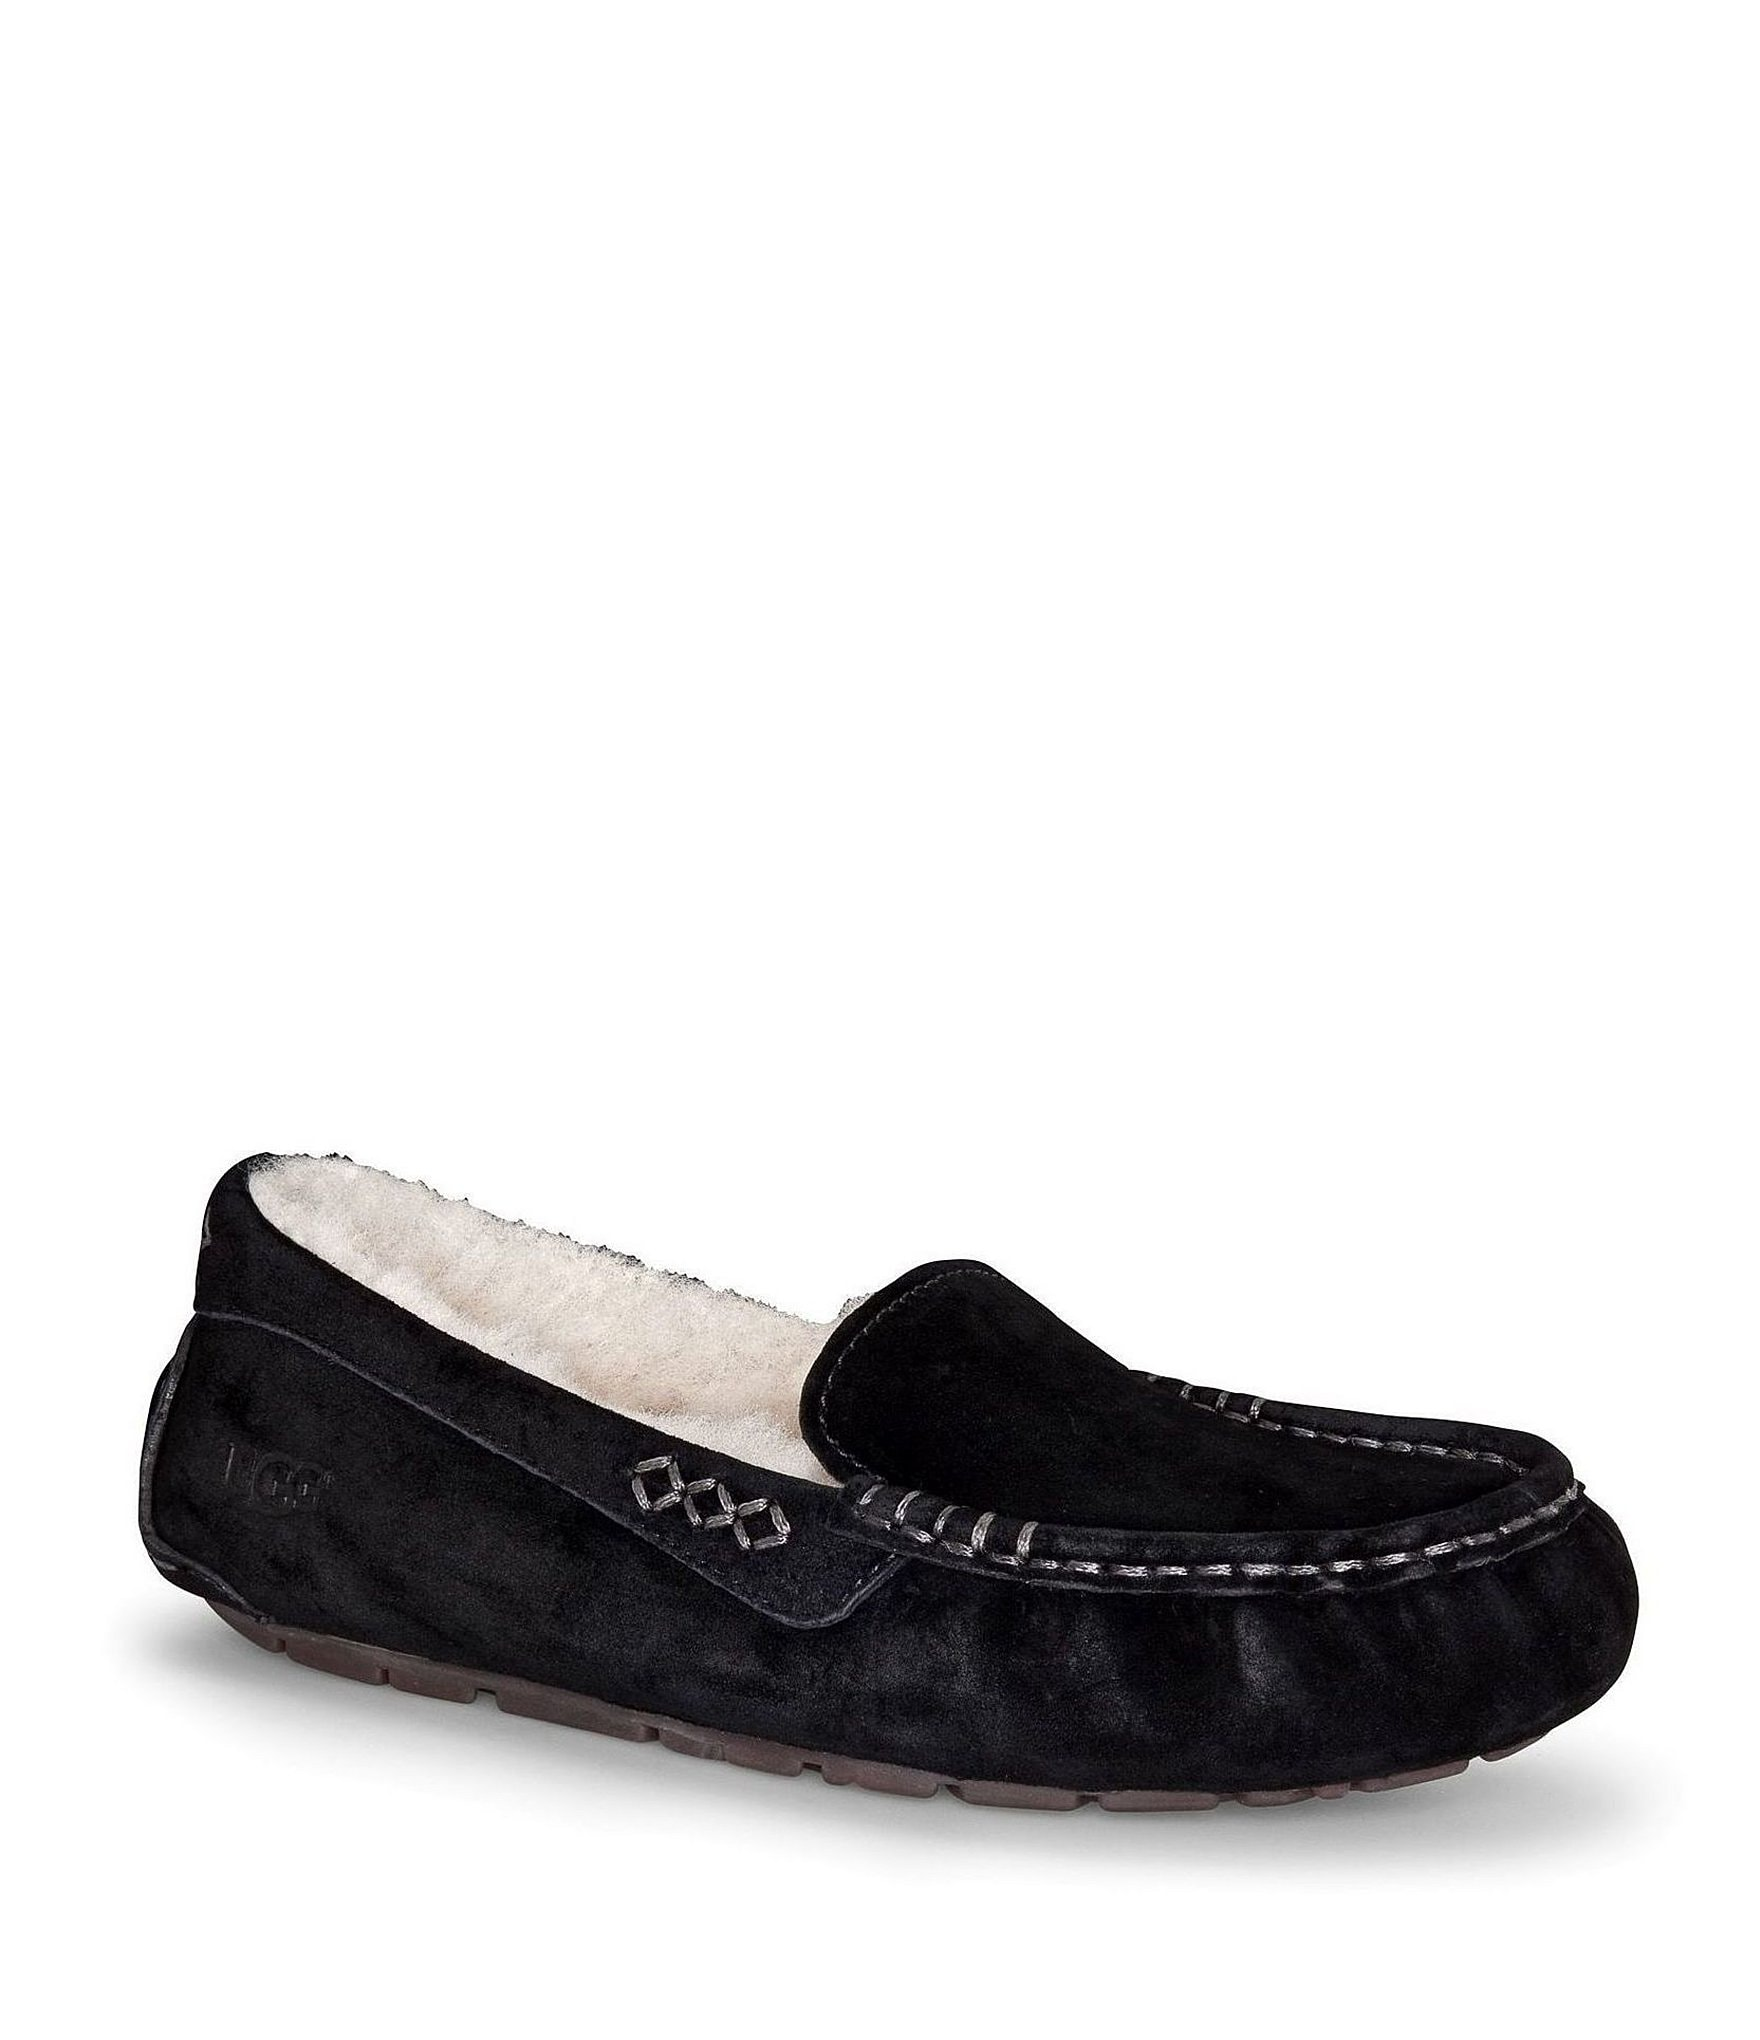 0455317f677 UGG® Ansley Water Resistant Suede Stitch Detailed Moccasin Slippers |  Dillard's